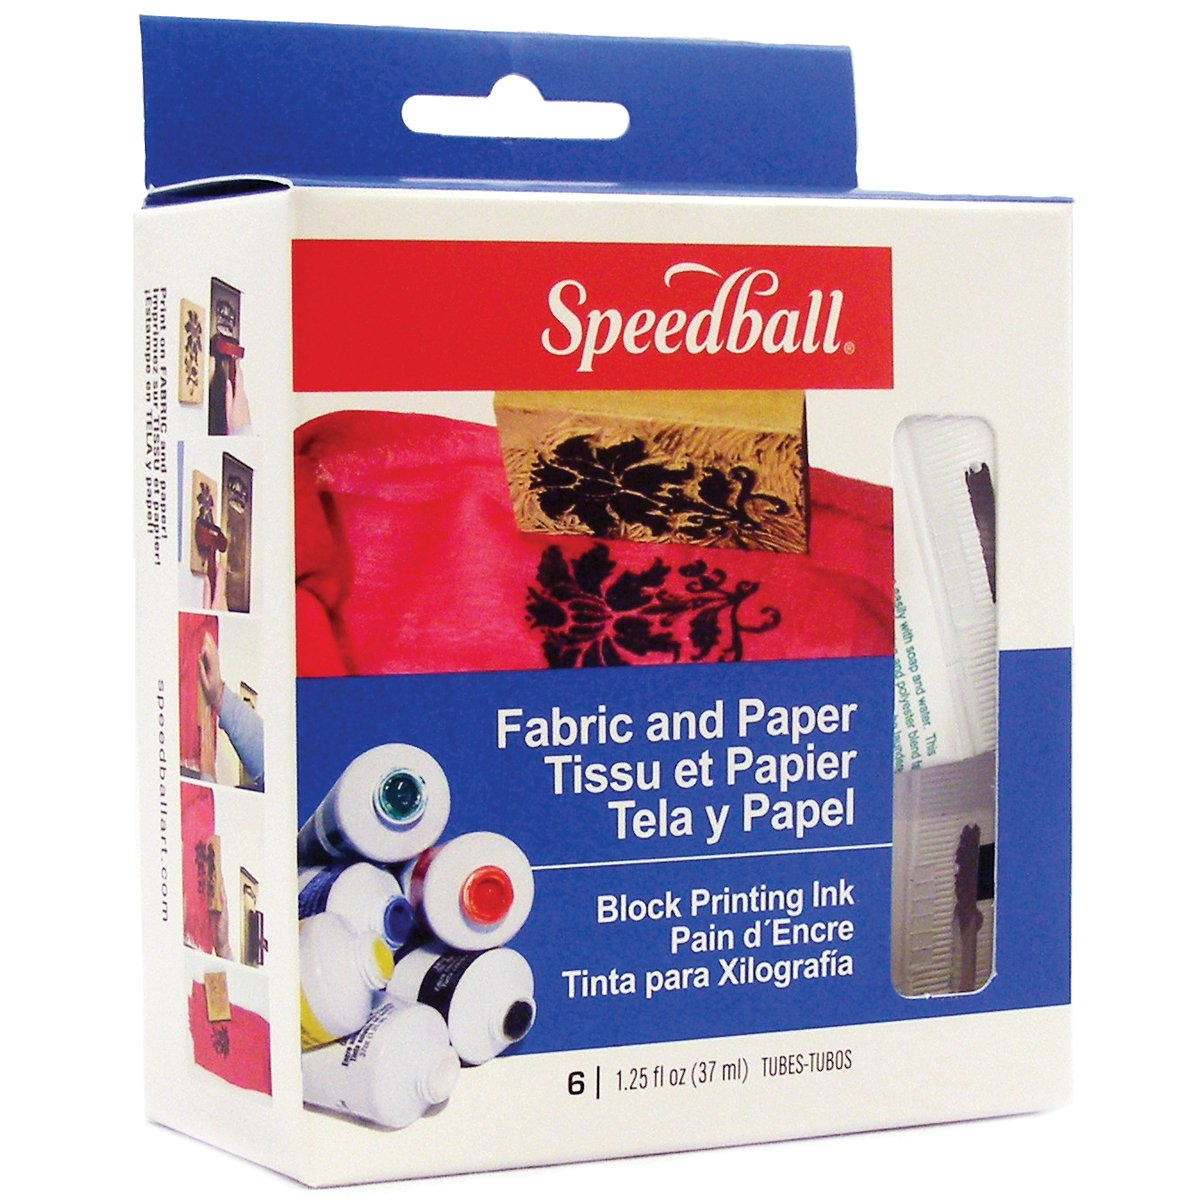 Speedball Art Products Block Printing Ink, 1.25-Ounce, Fabric and Paper, 6 Per Package 3479